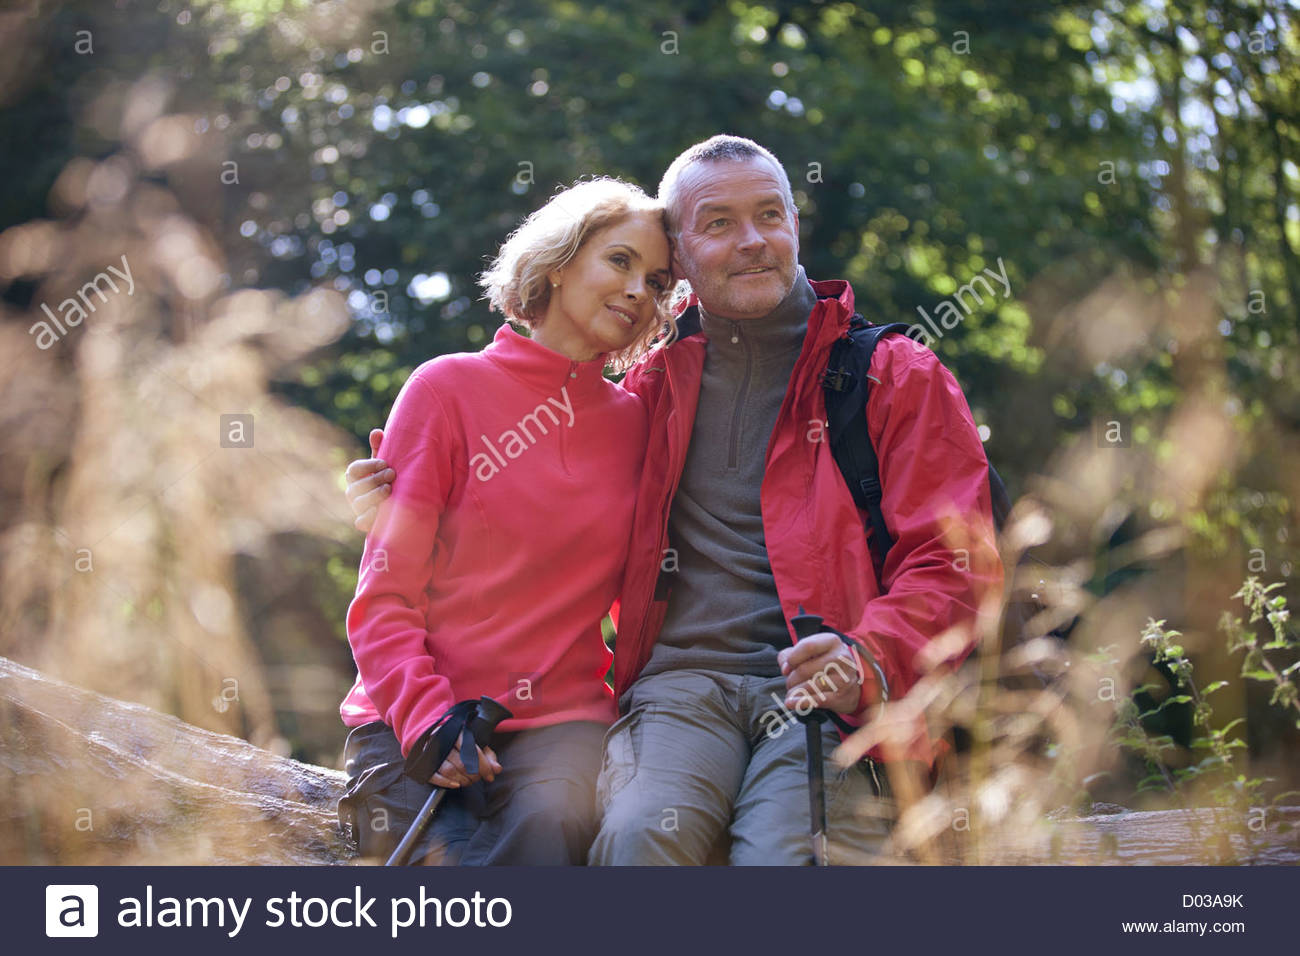 A mature couple sitting on a tree trunk looking at their surroundings - Stock Image